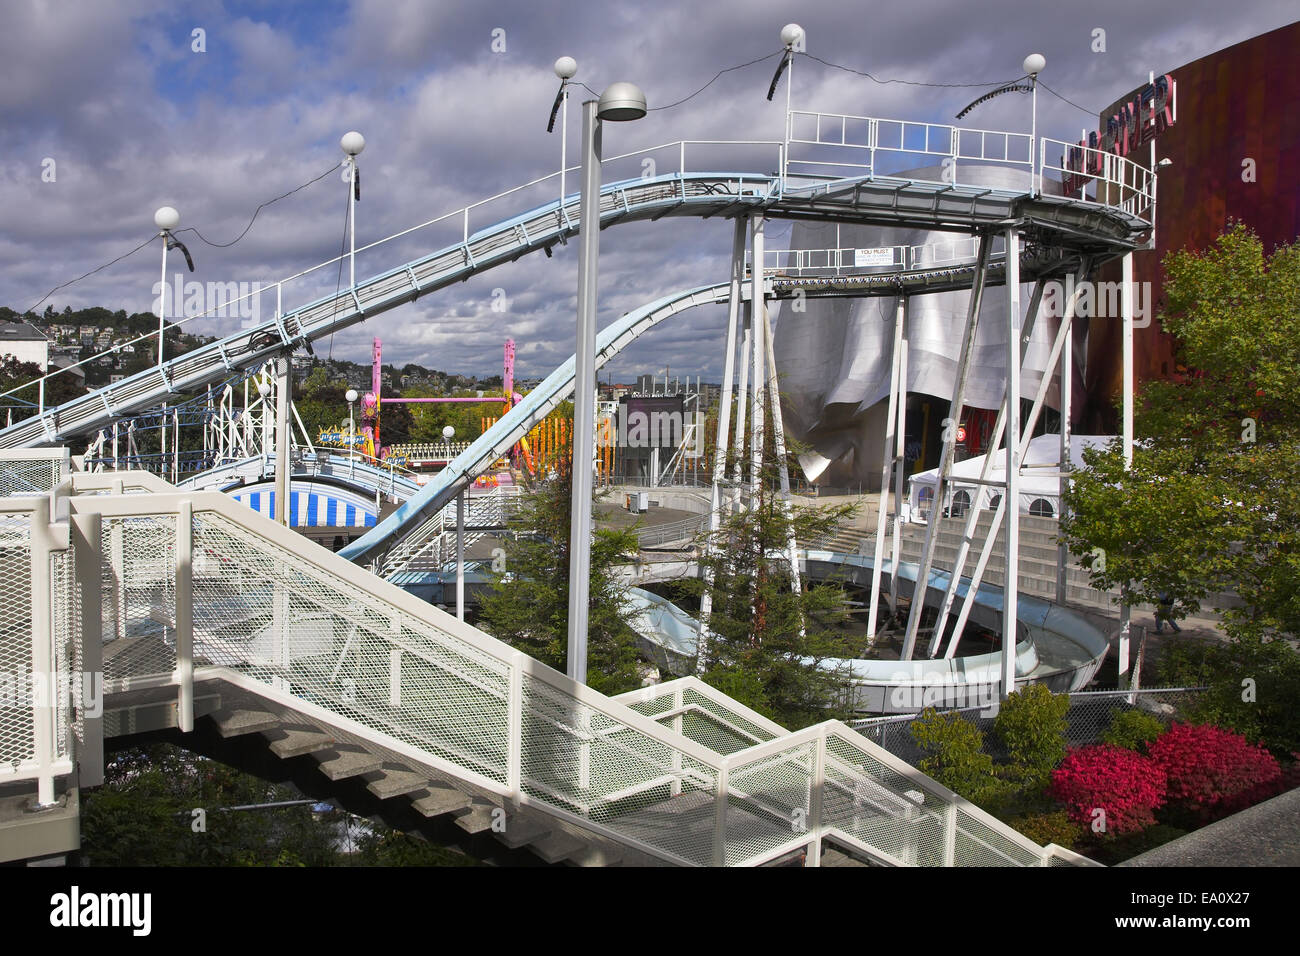 Park of entertainments in Seattle - Stock Image